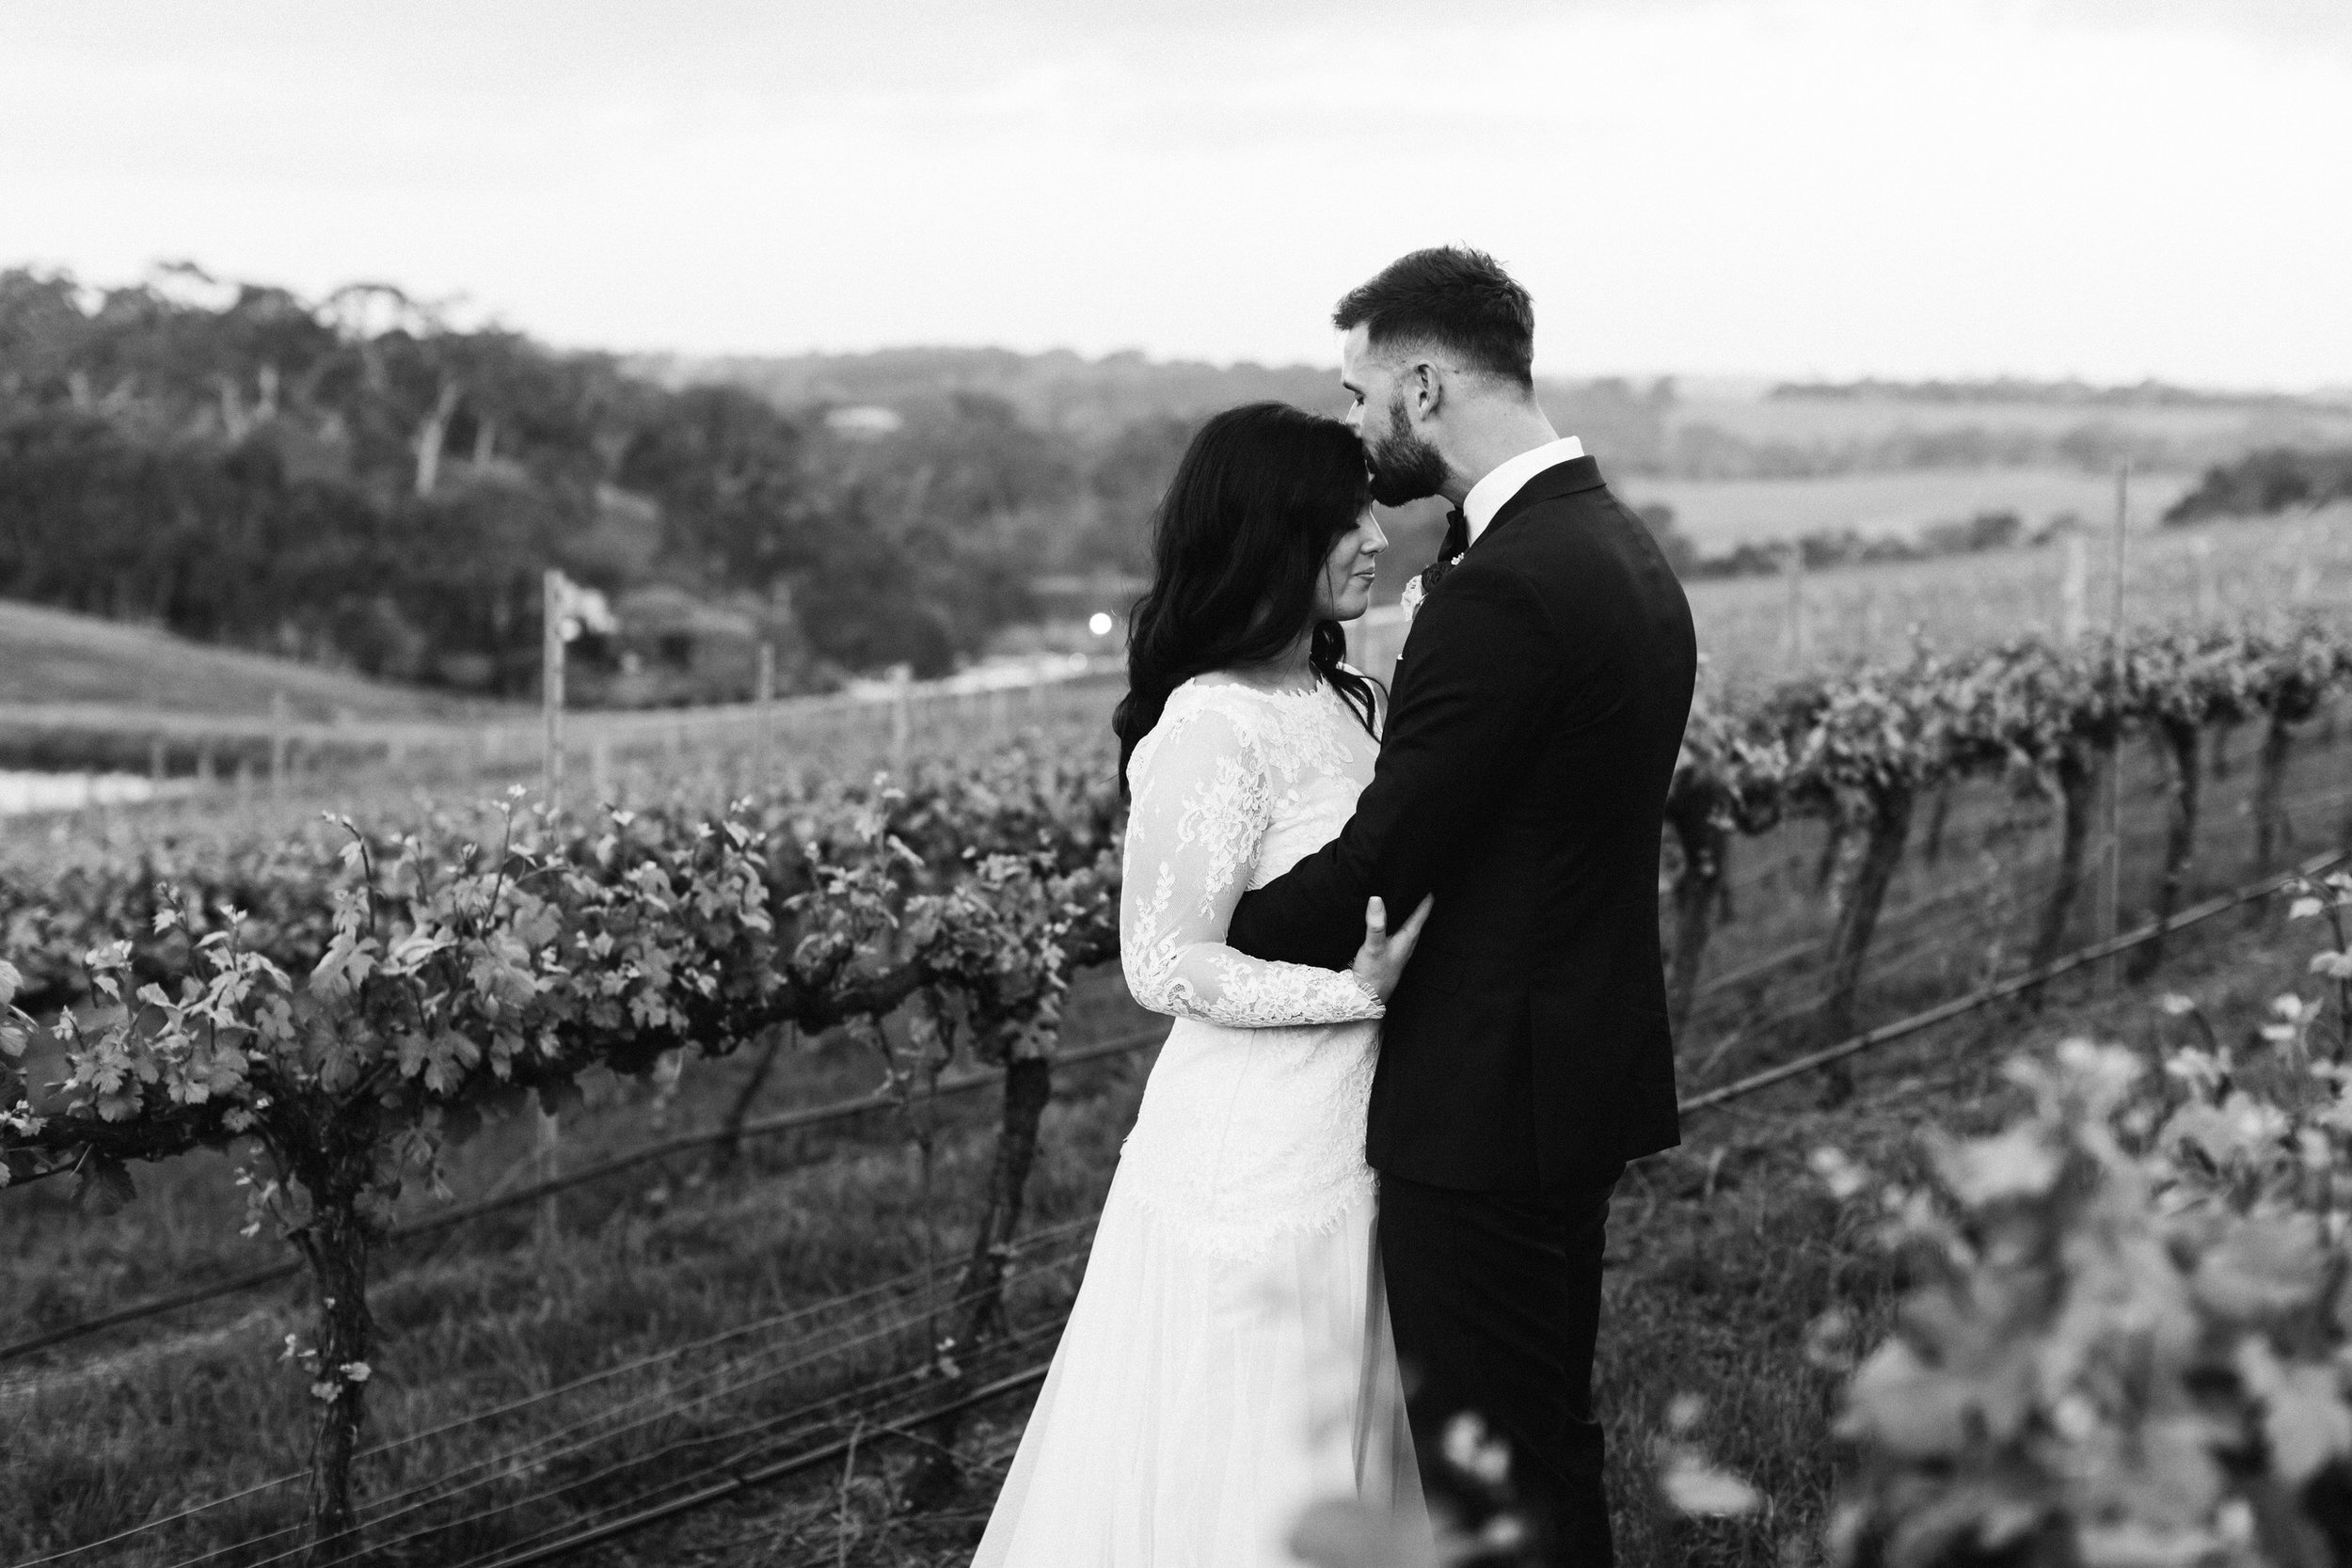 Goldings Winery Wedding SA 175.jpg